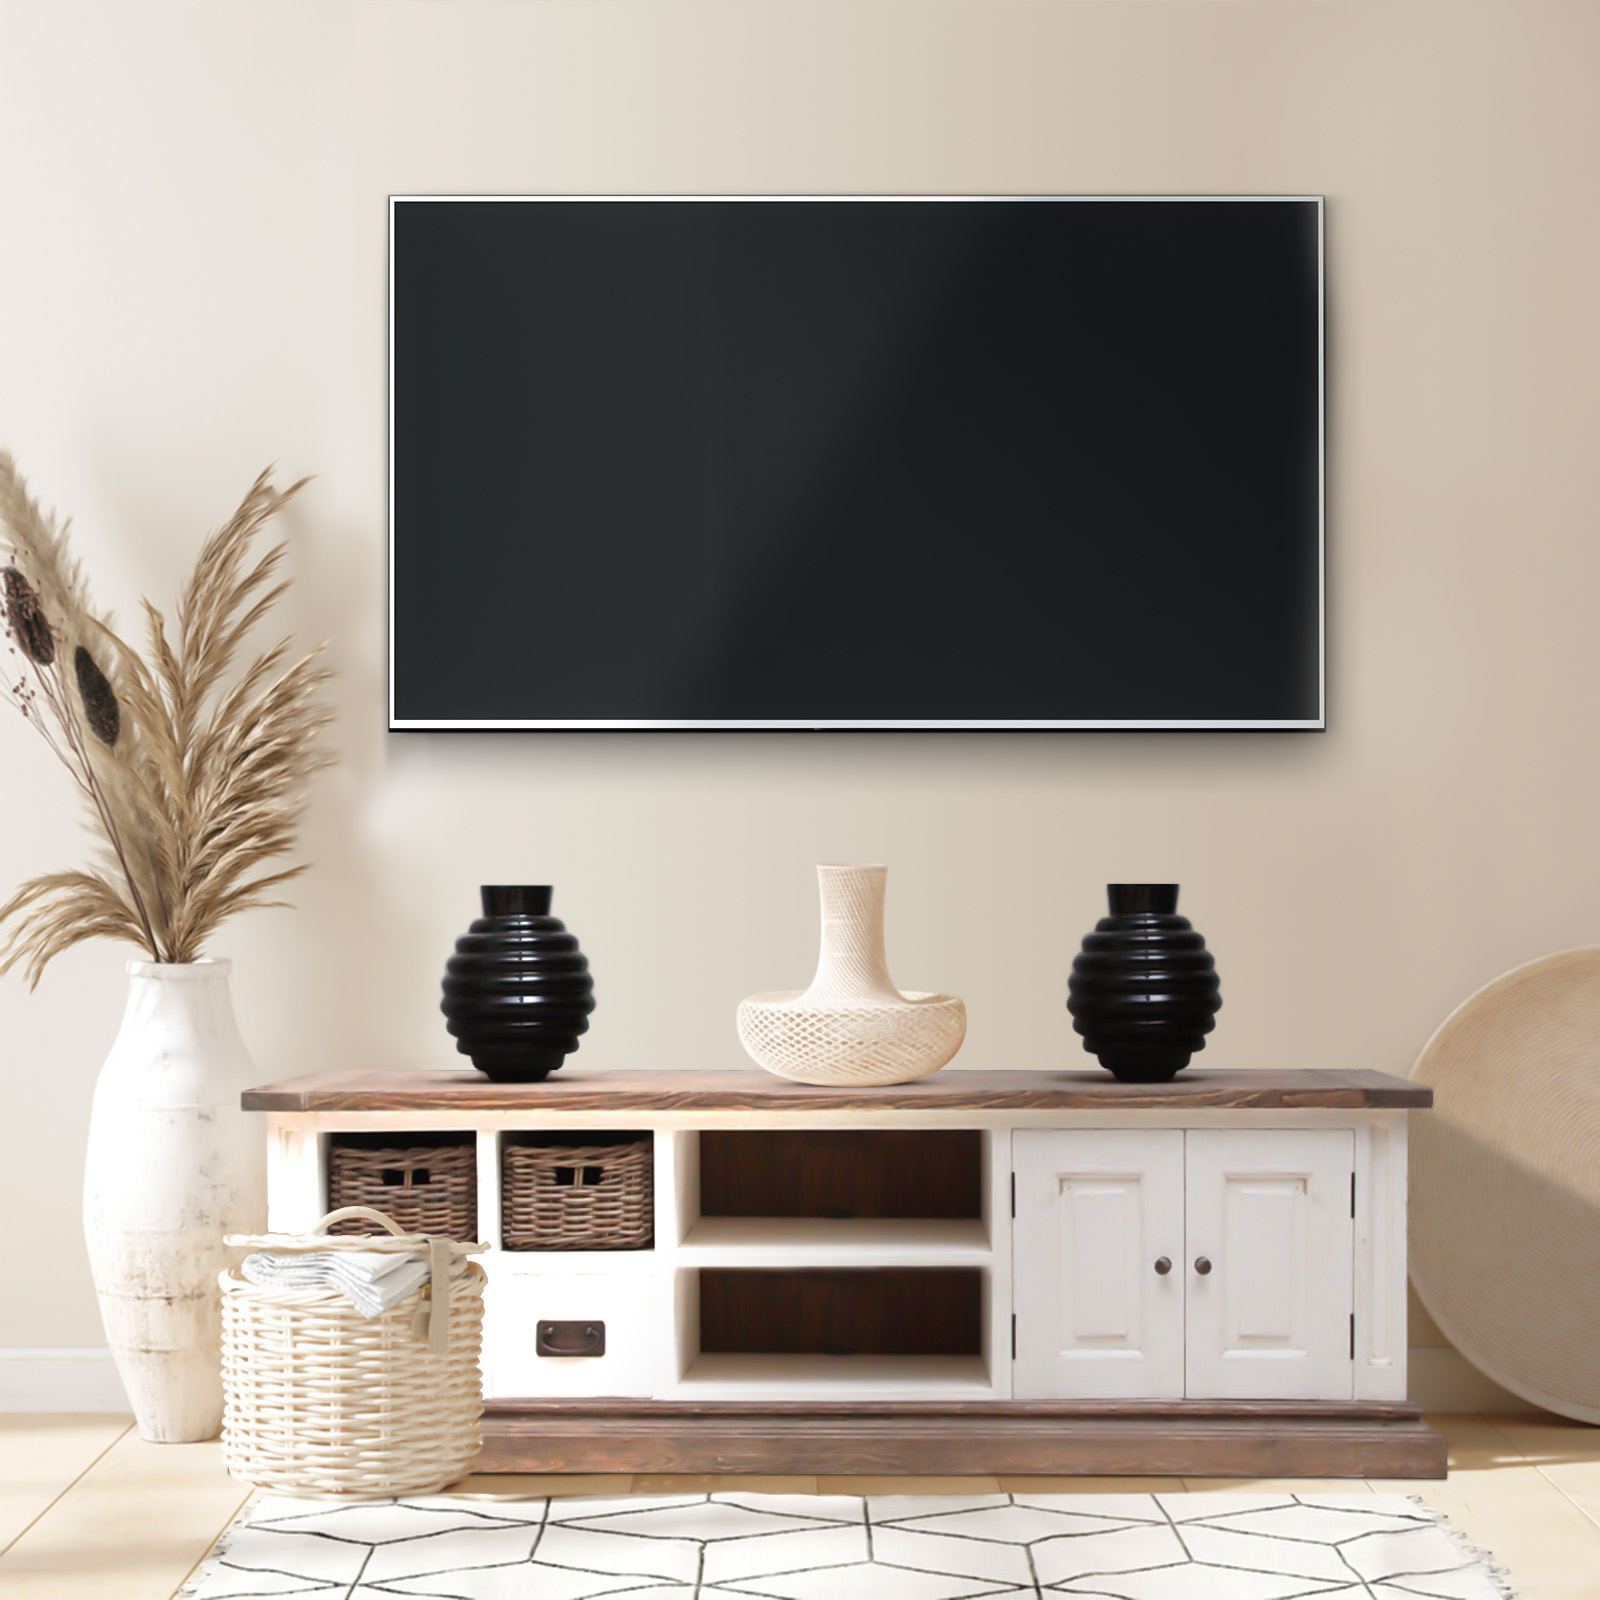 Meuble Tv En Pin Massif Thani Khahomedesign # Meuble Tv Pin Massif Blanc